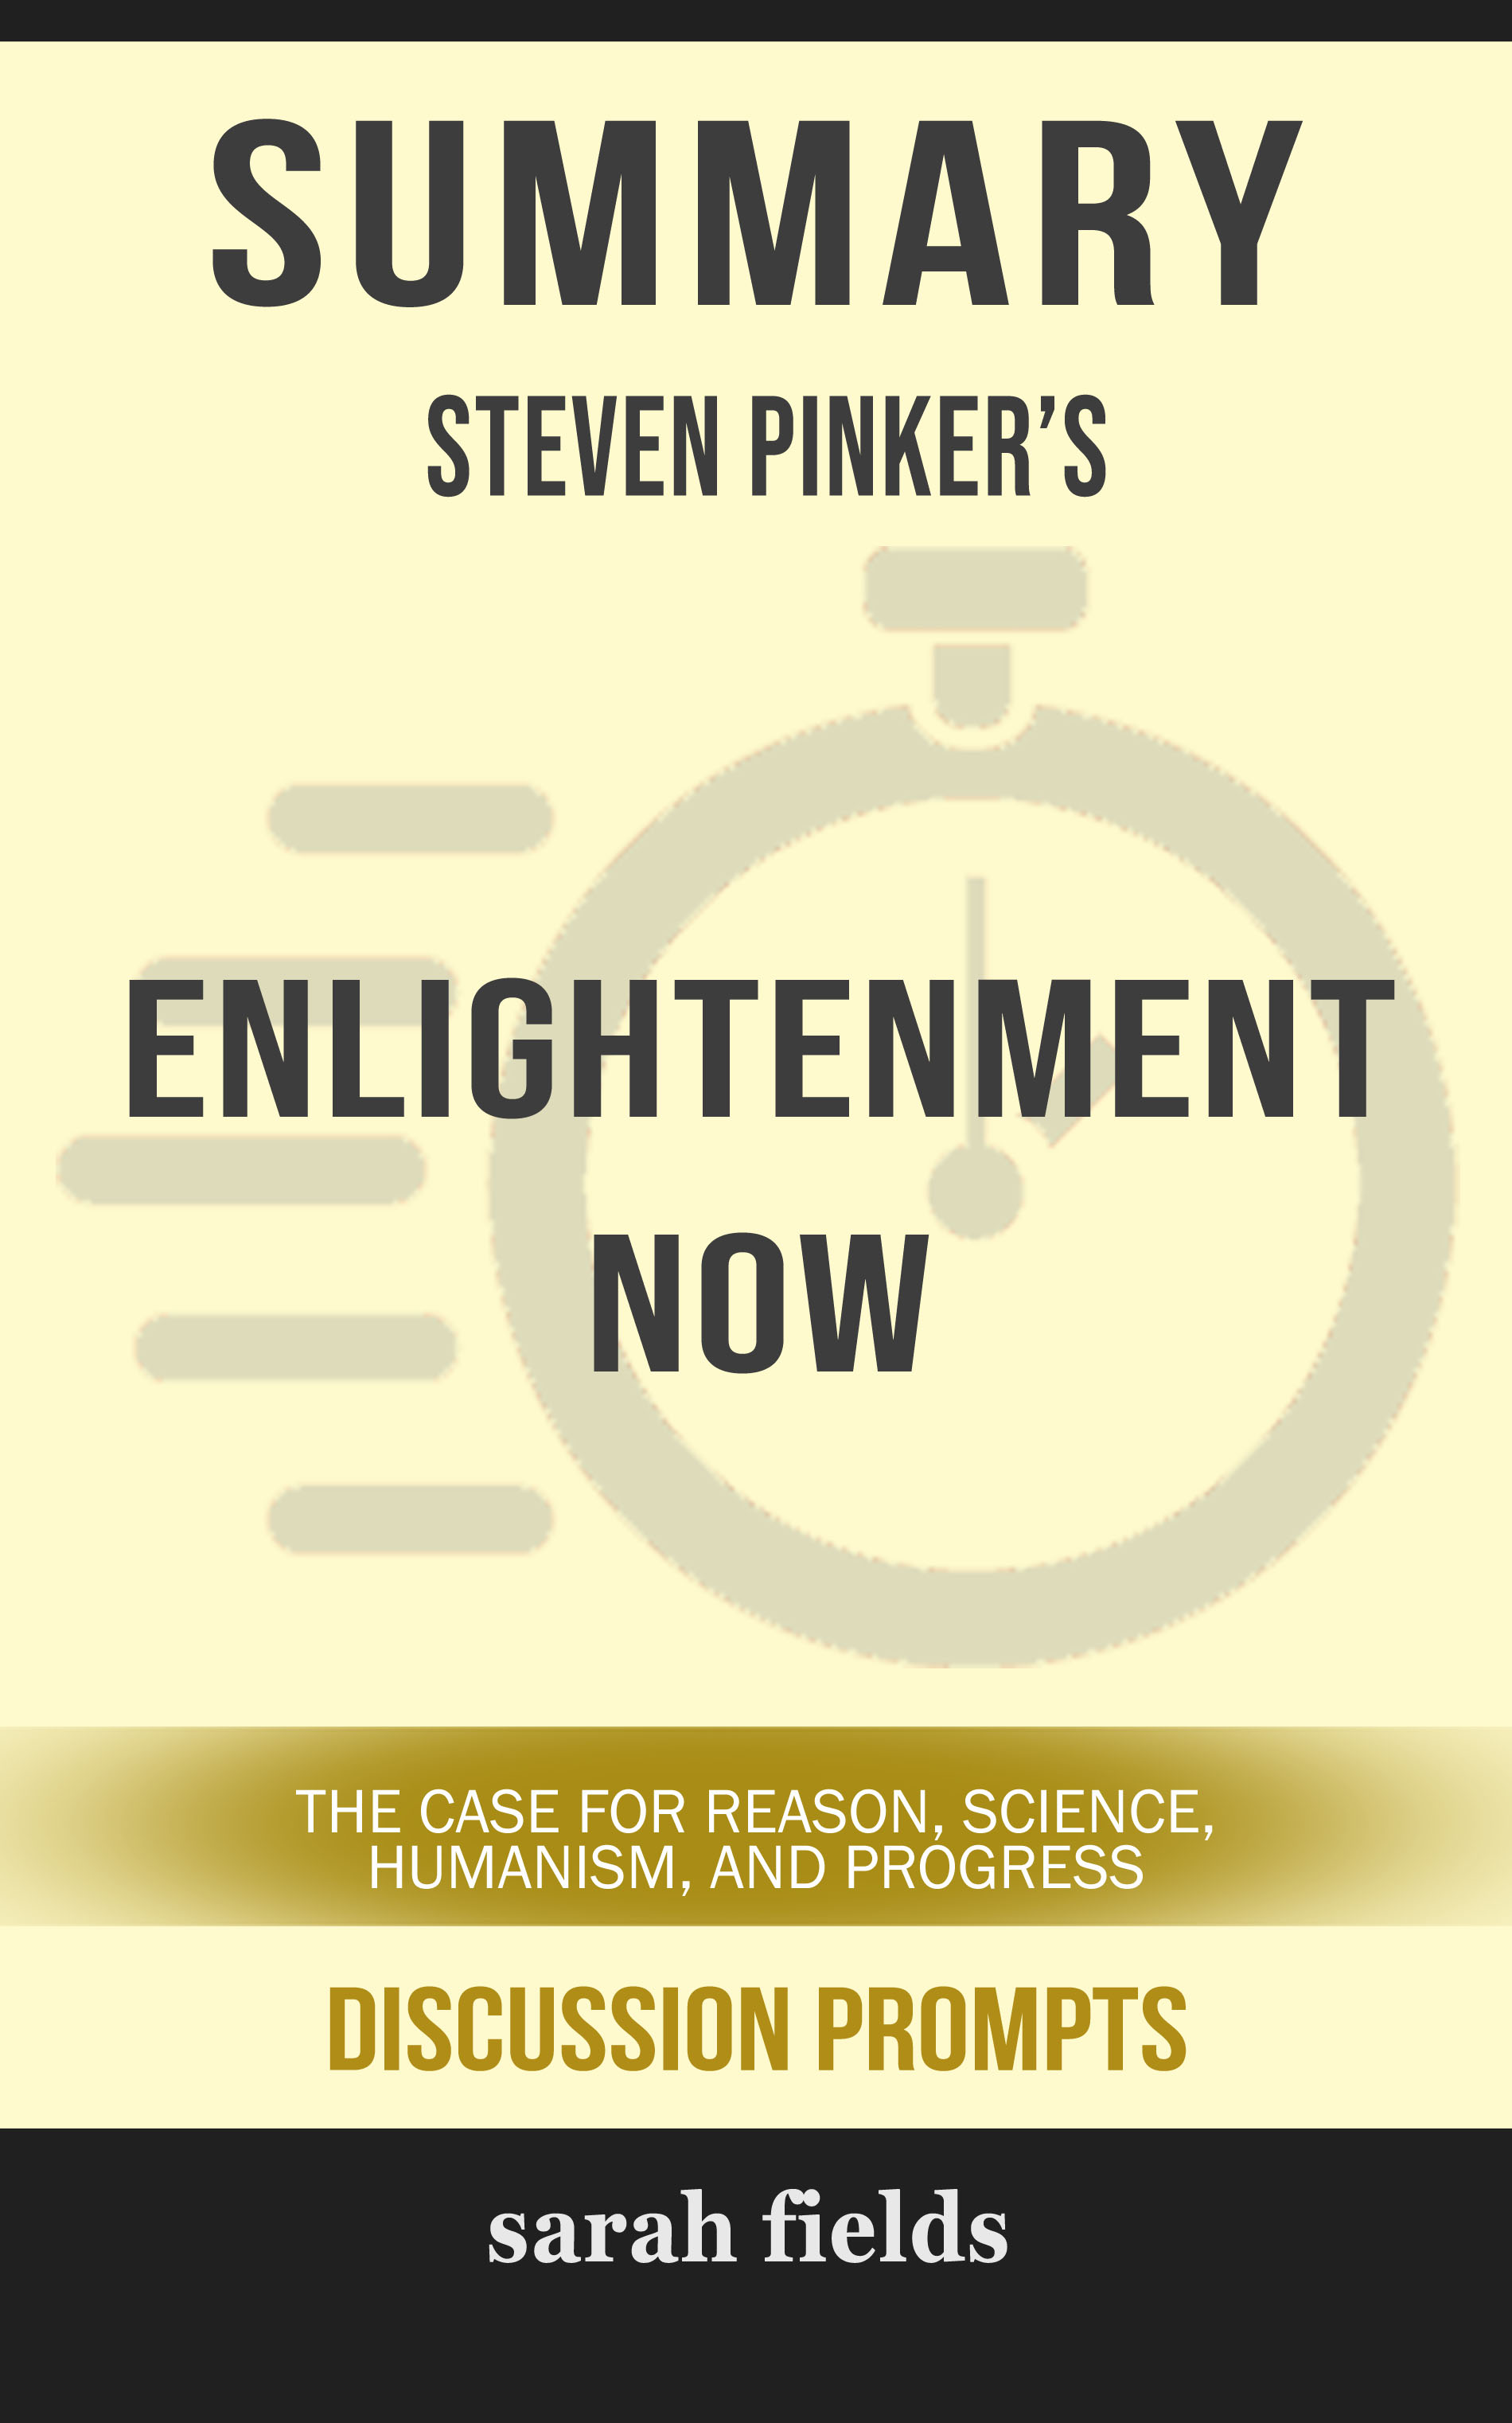 Summary of Enlightenment Now: The Case for Reason, Science, Humanism, and  Progress by Steven Pinker (Discussion Prompts), an Ebook by Sarah Fields